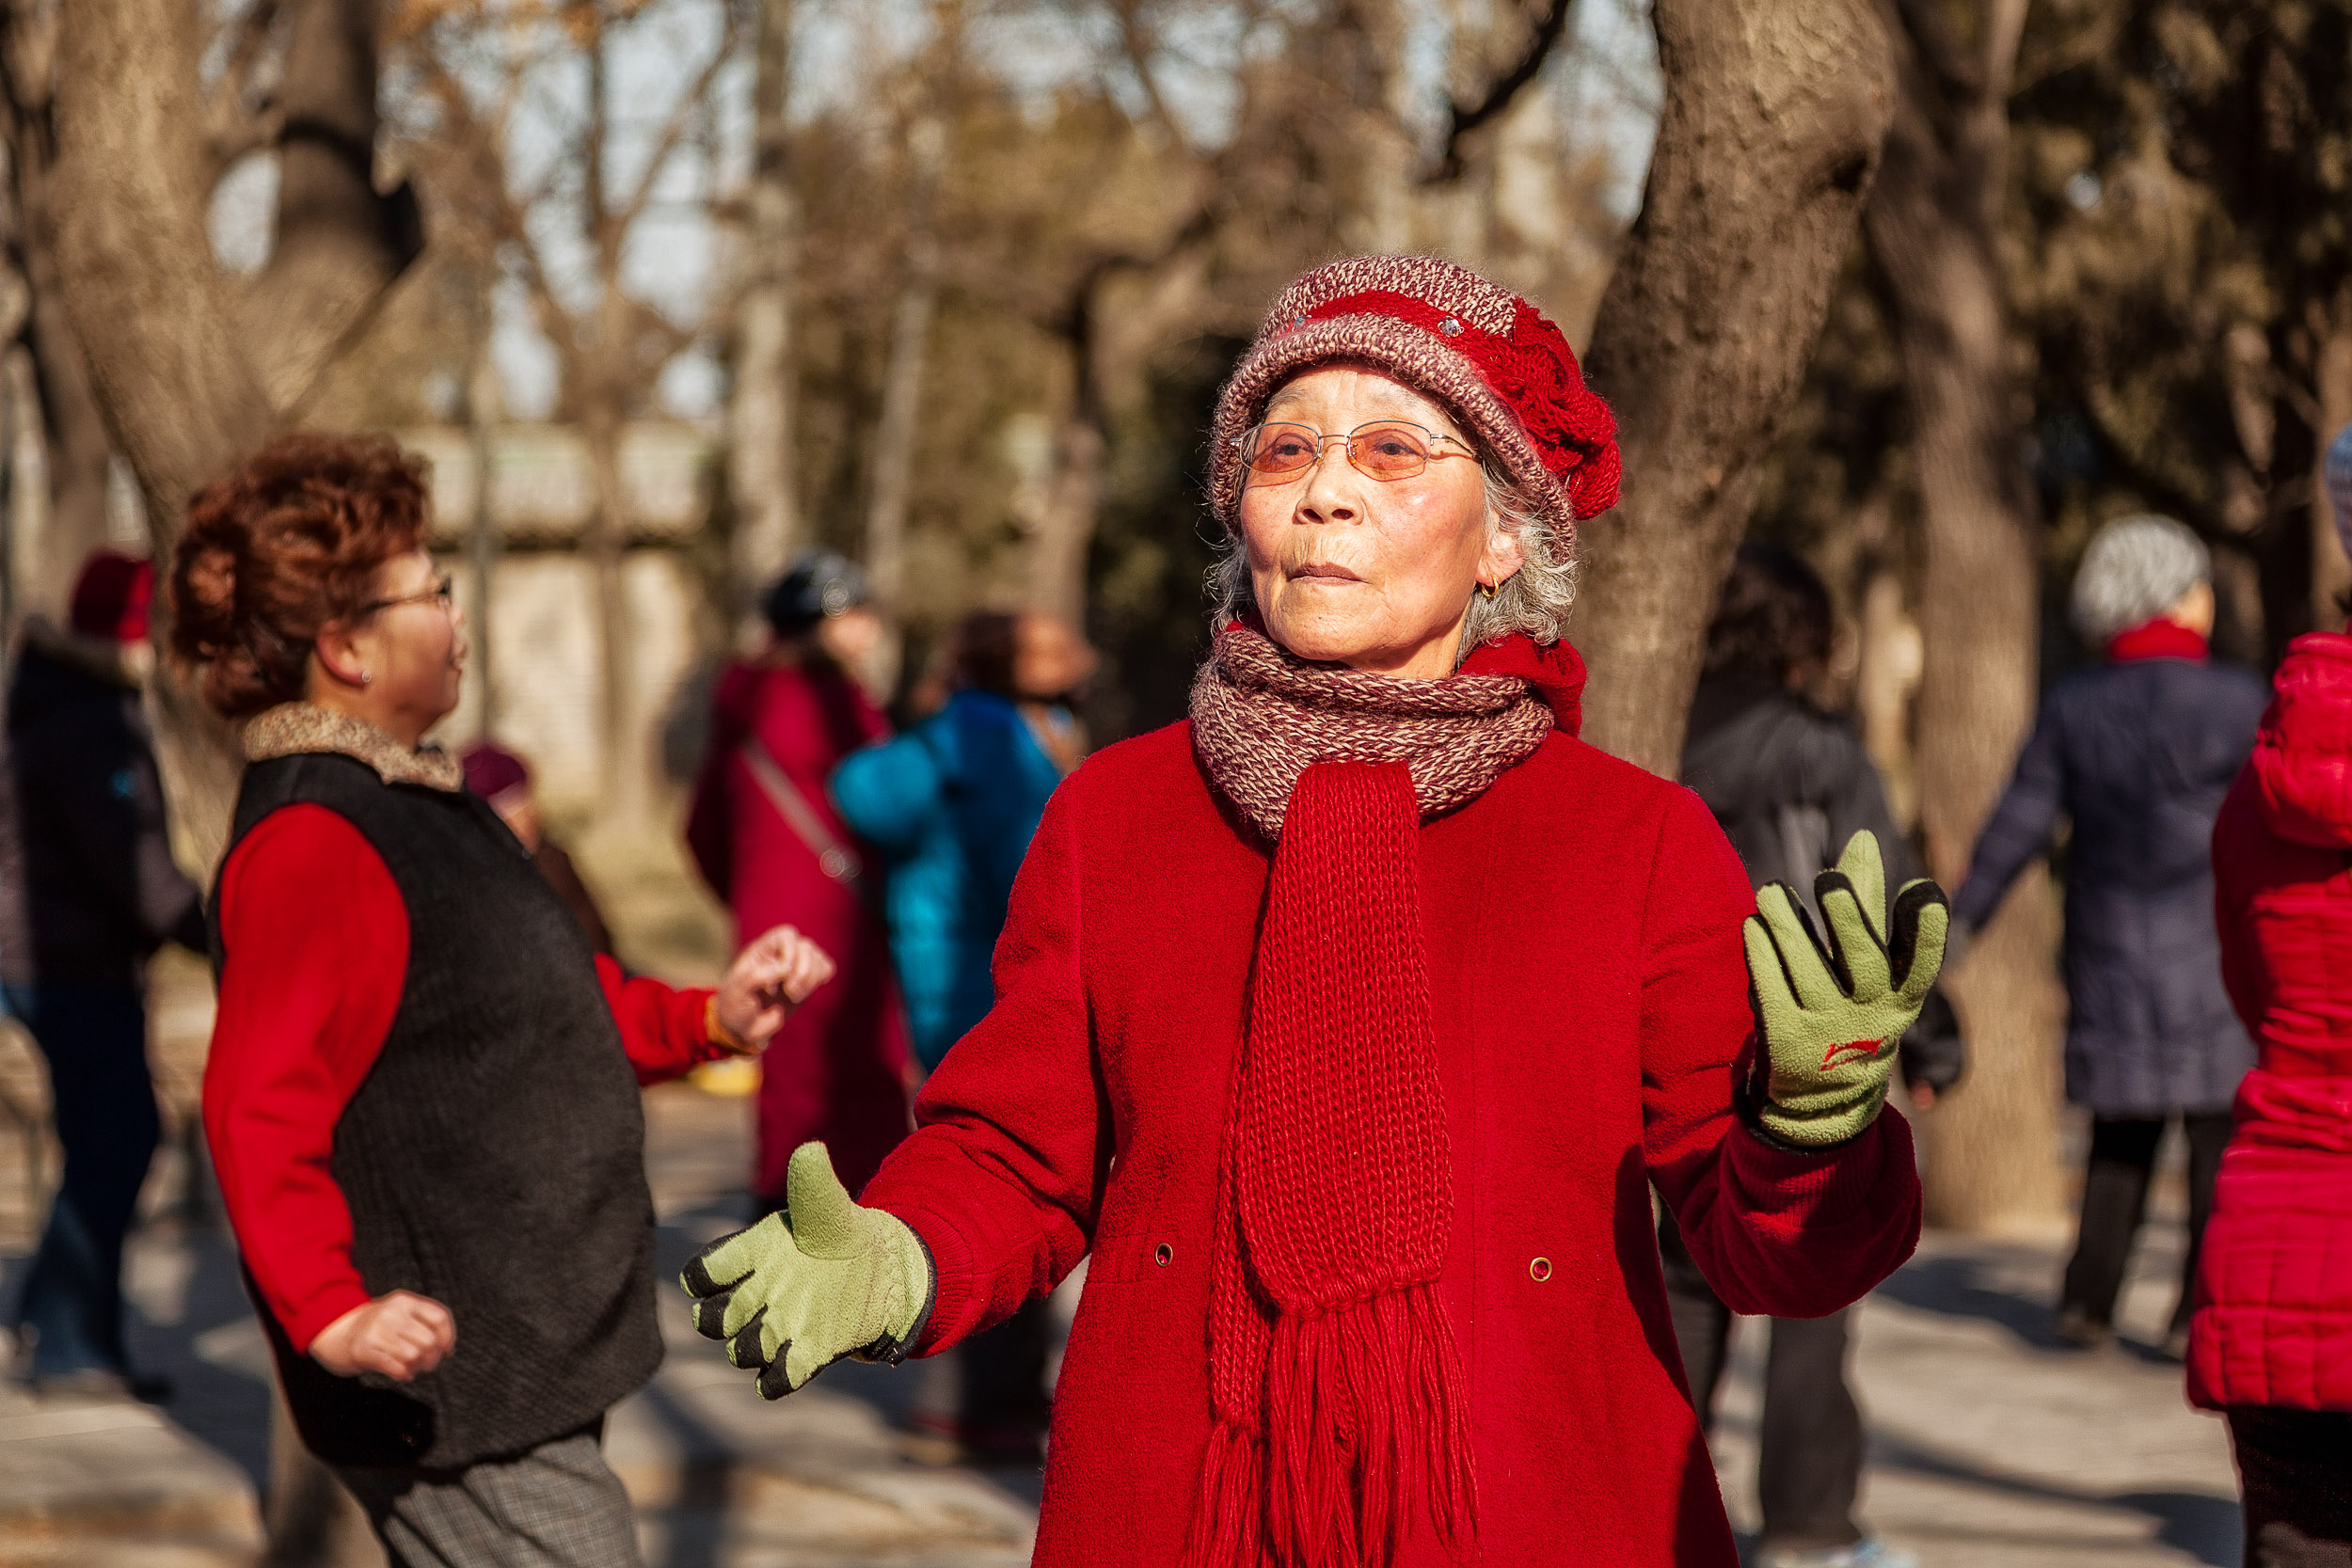 A group of    elderly women dancing    in the grounds of the    Temple Of Heaven   , on a winter's day, in    Beijing, China   .